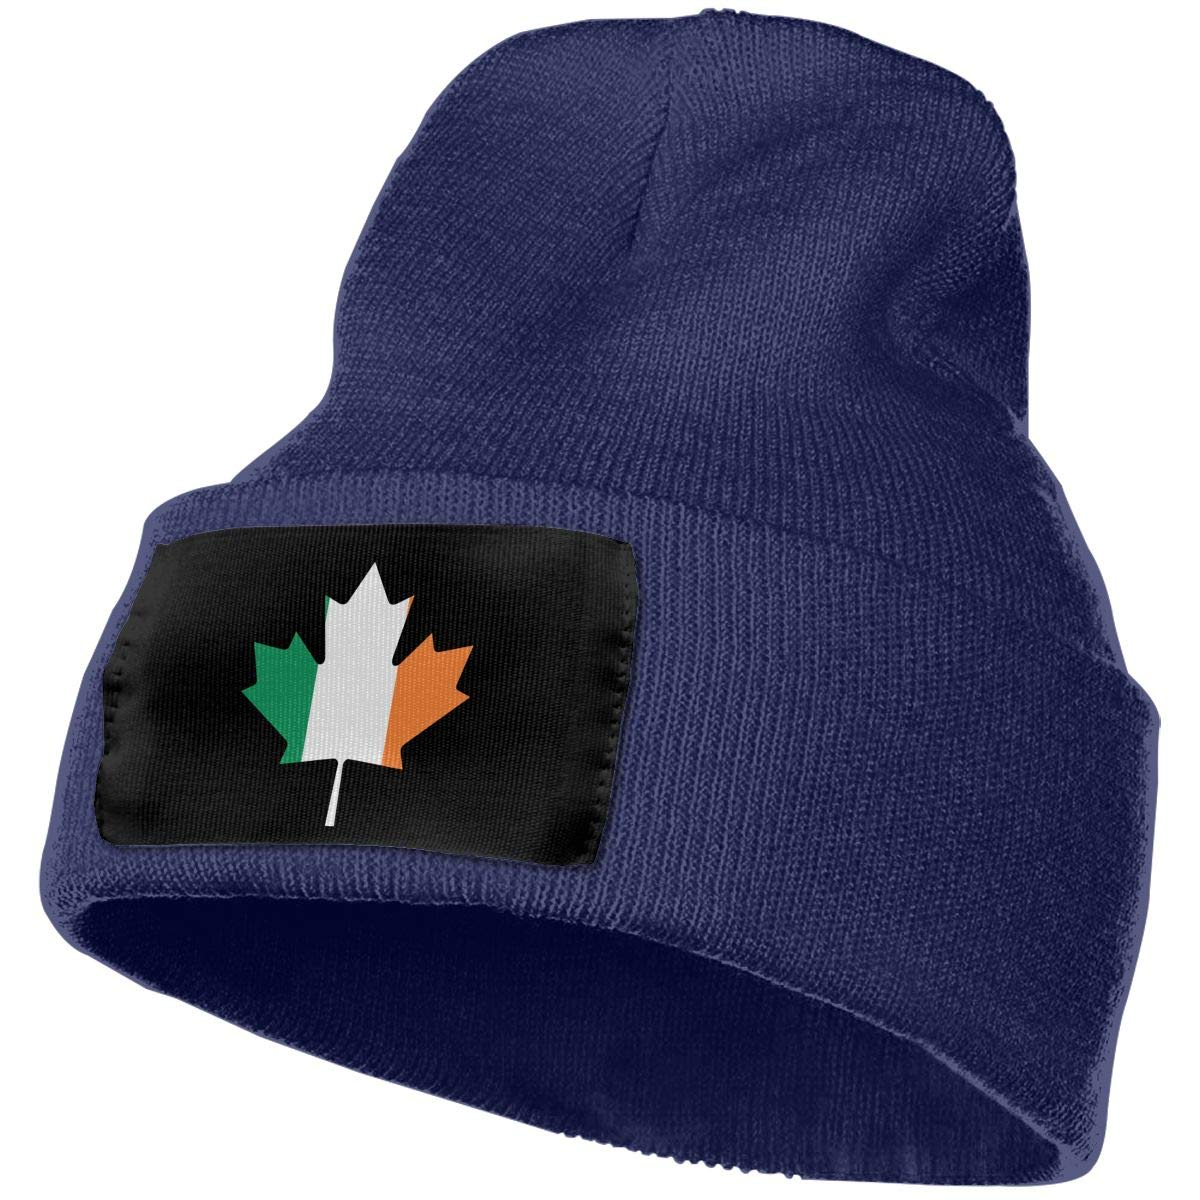 Unisex Canadian Irish Flag Maple Leaf Outdoor Fashion Knit Beanies Hat Soft Winter Skull Caps